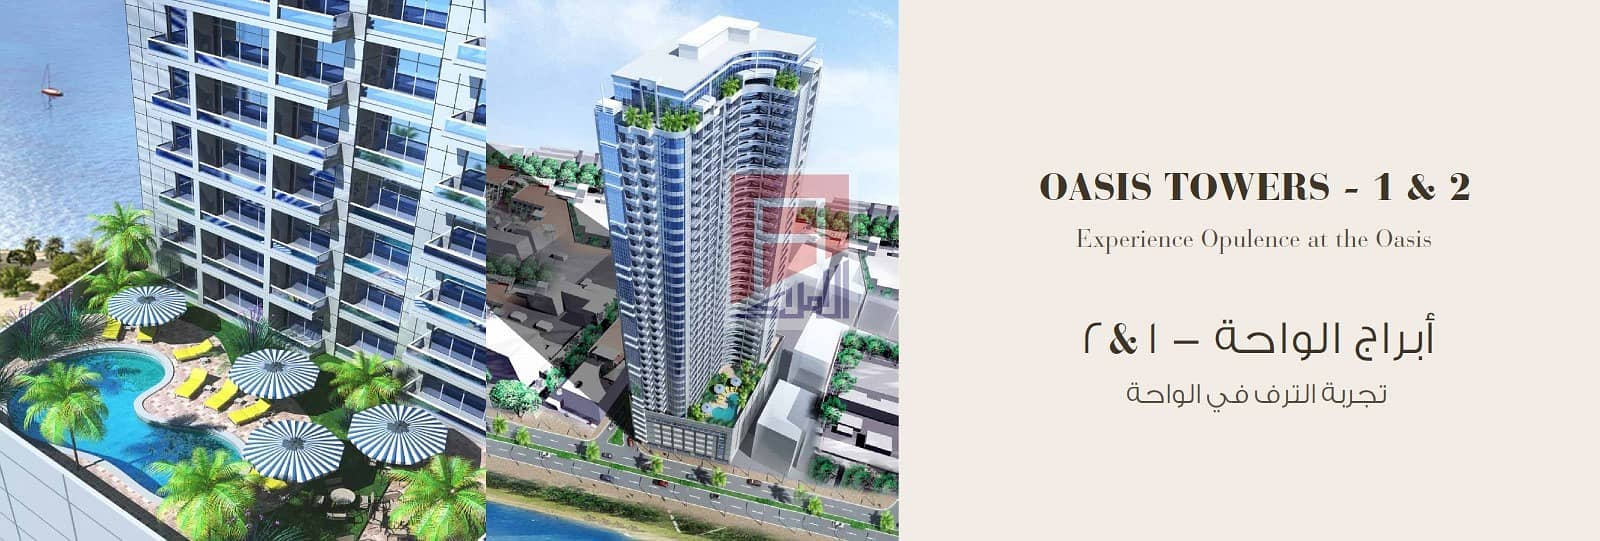 pay 30000 down payment only and own 1 BHK full sea view immediately in oasis tower